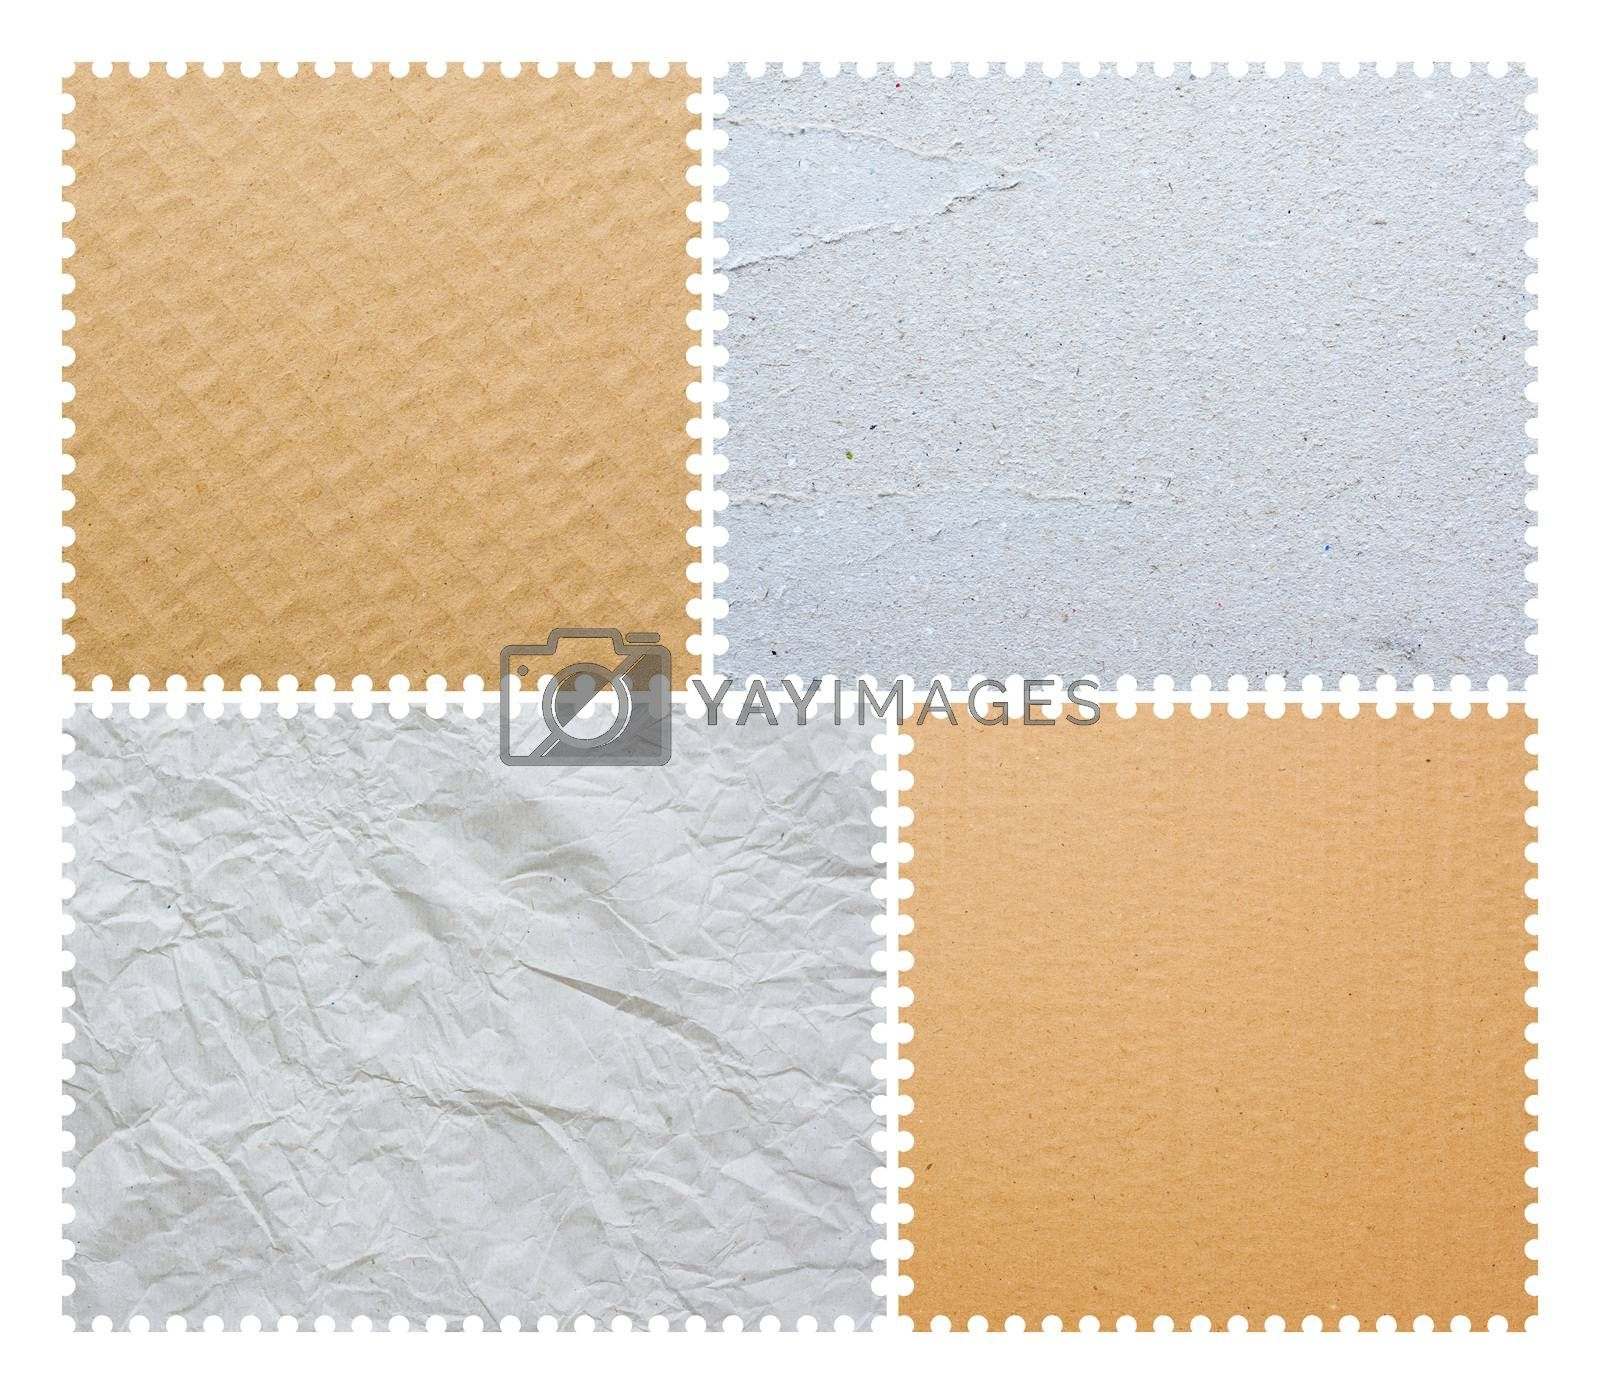 Royalty free image of Stamp Borders isolated by myyaym